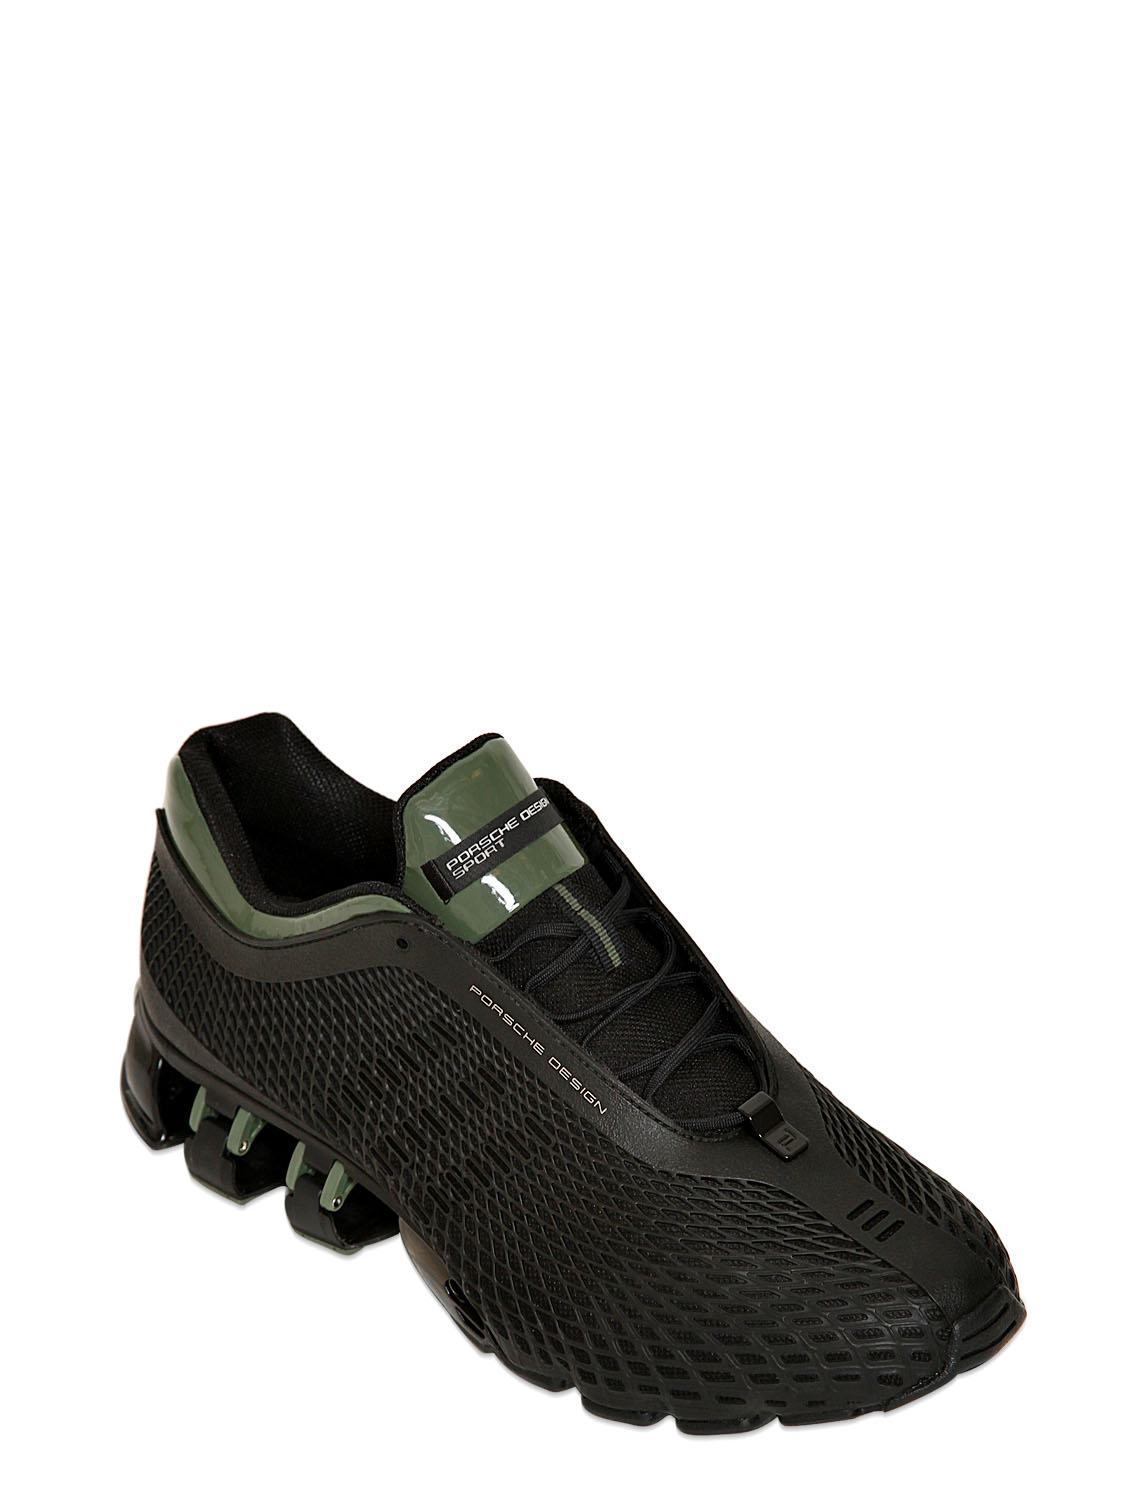 separation shoes e5b20 5f749 Porsche Design Black Run Bounce S2 Superior Running Sneakers for men